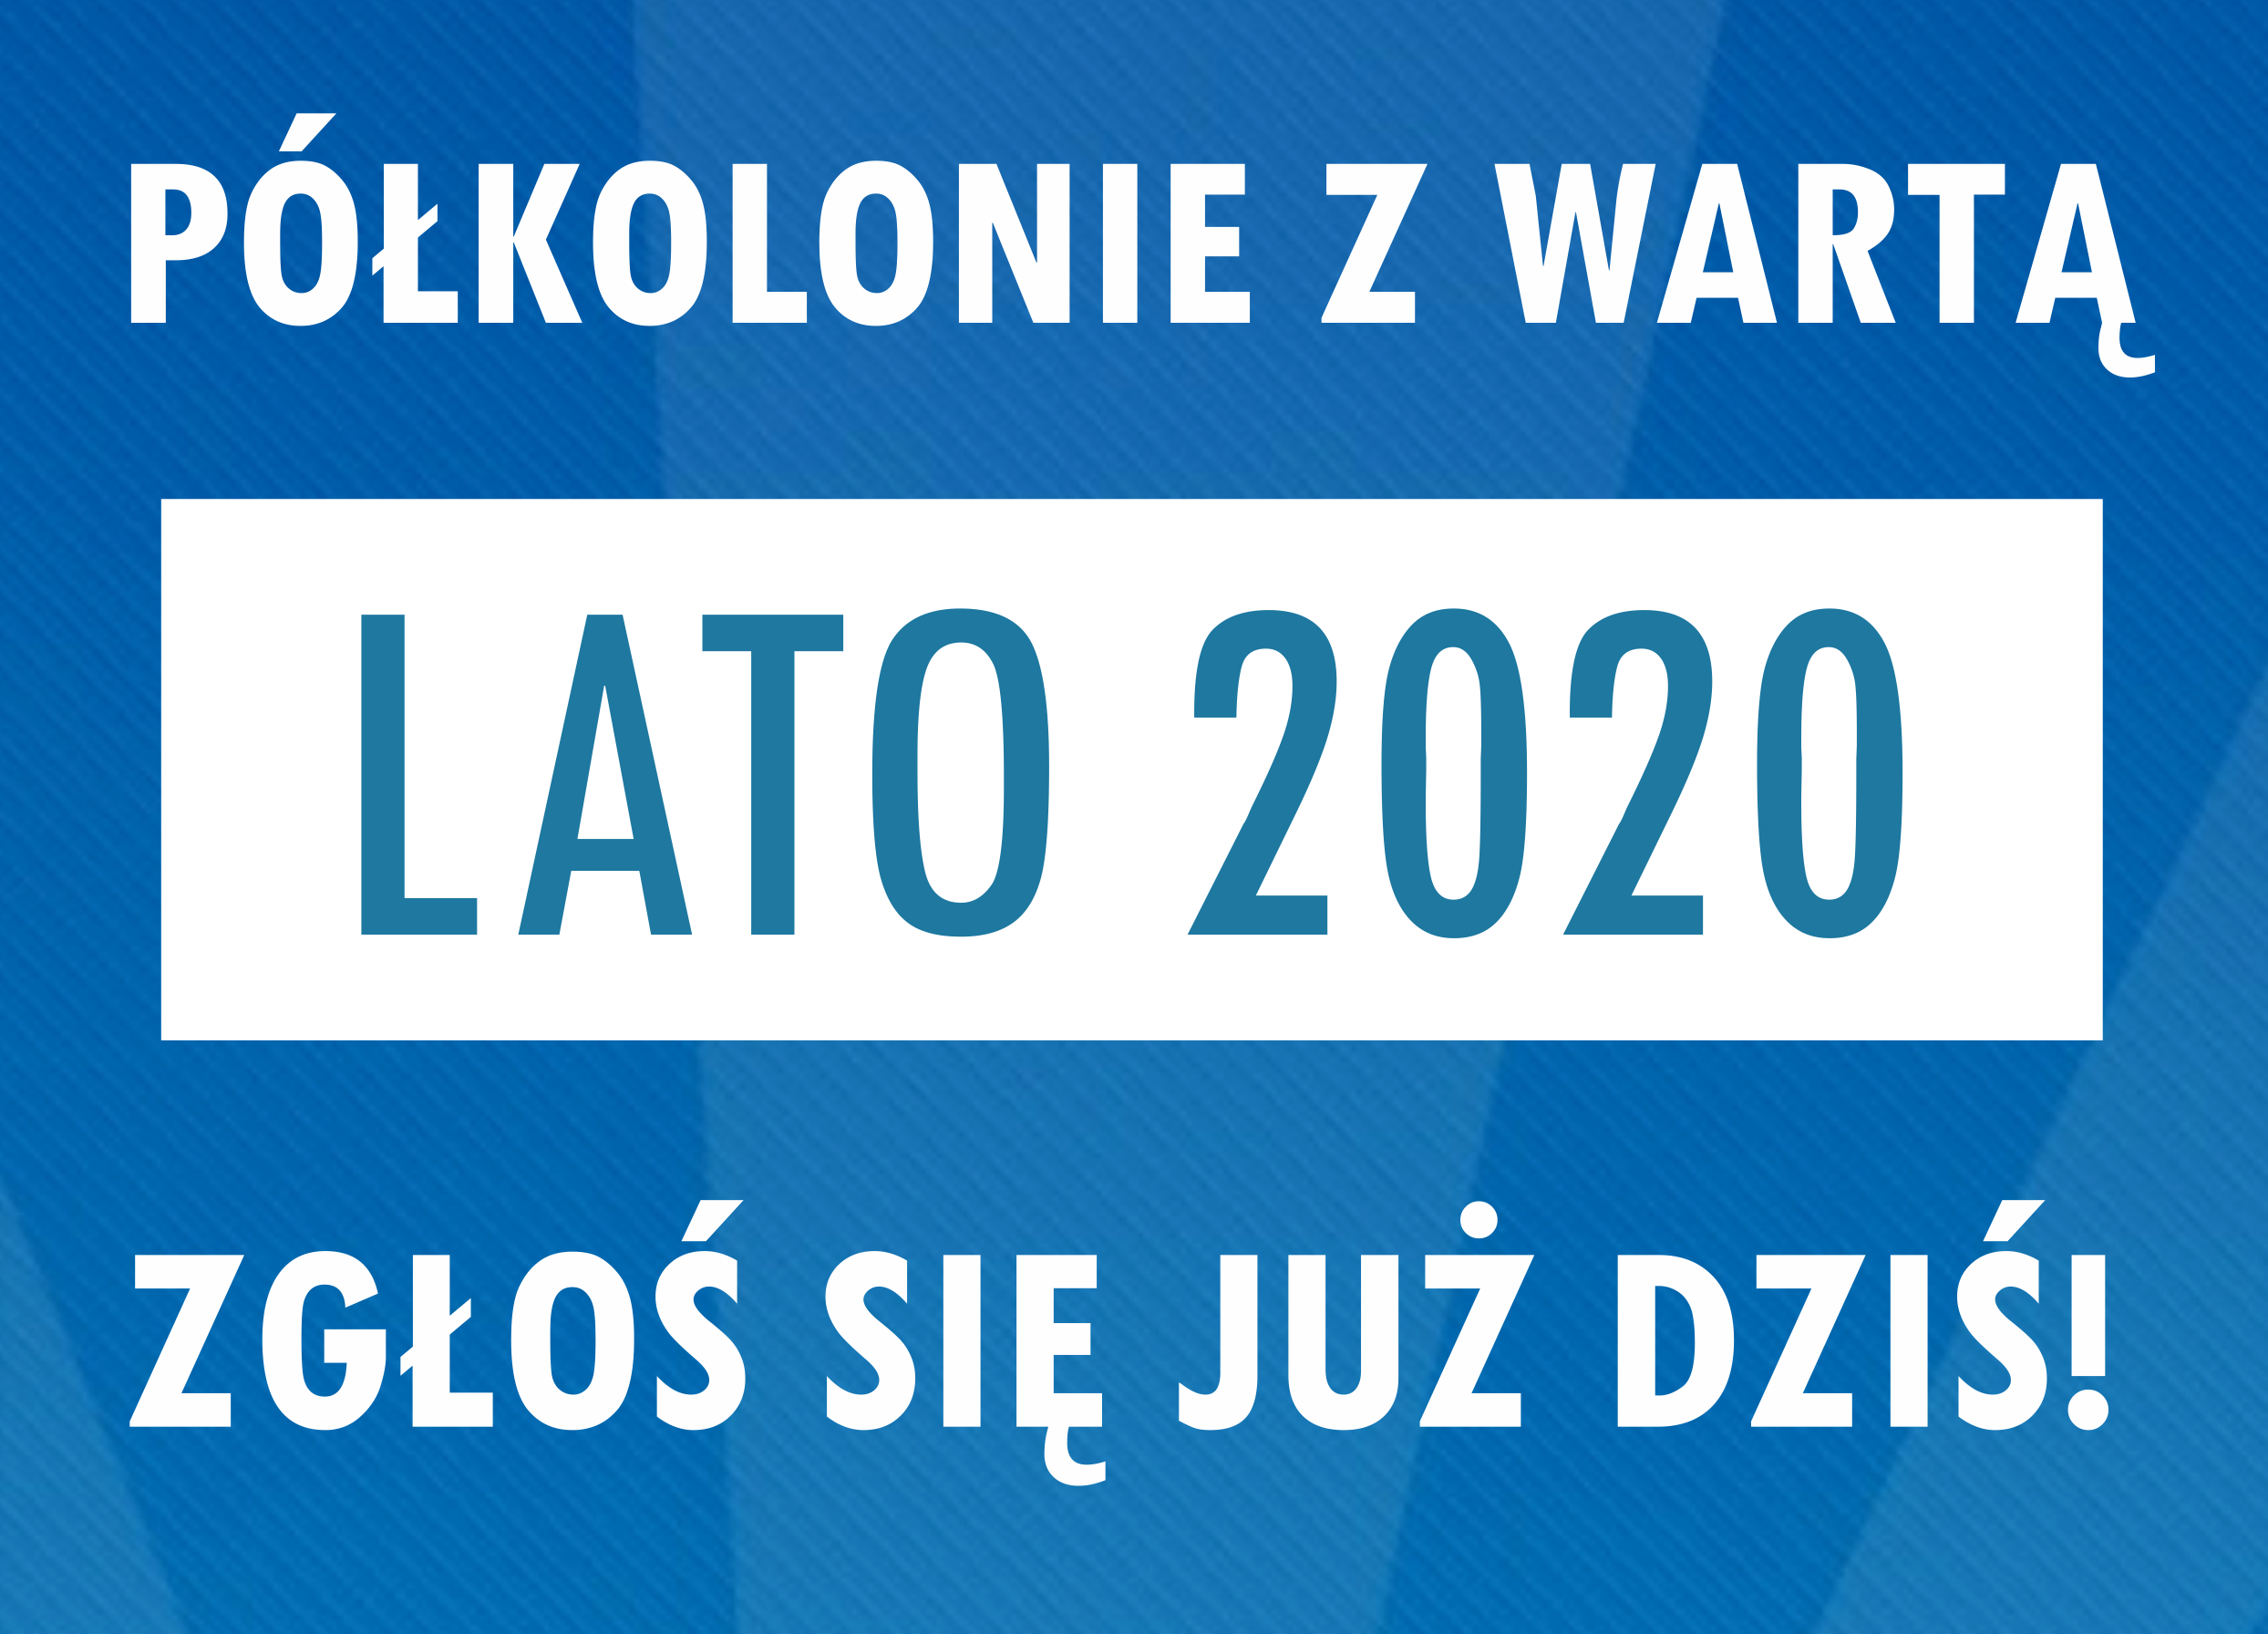 PÓŁKOLONIE 2020